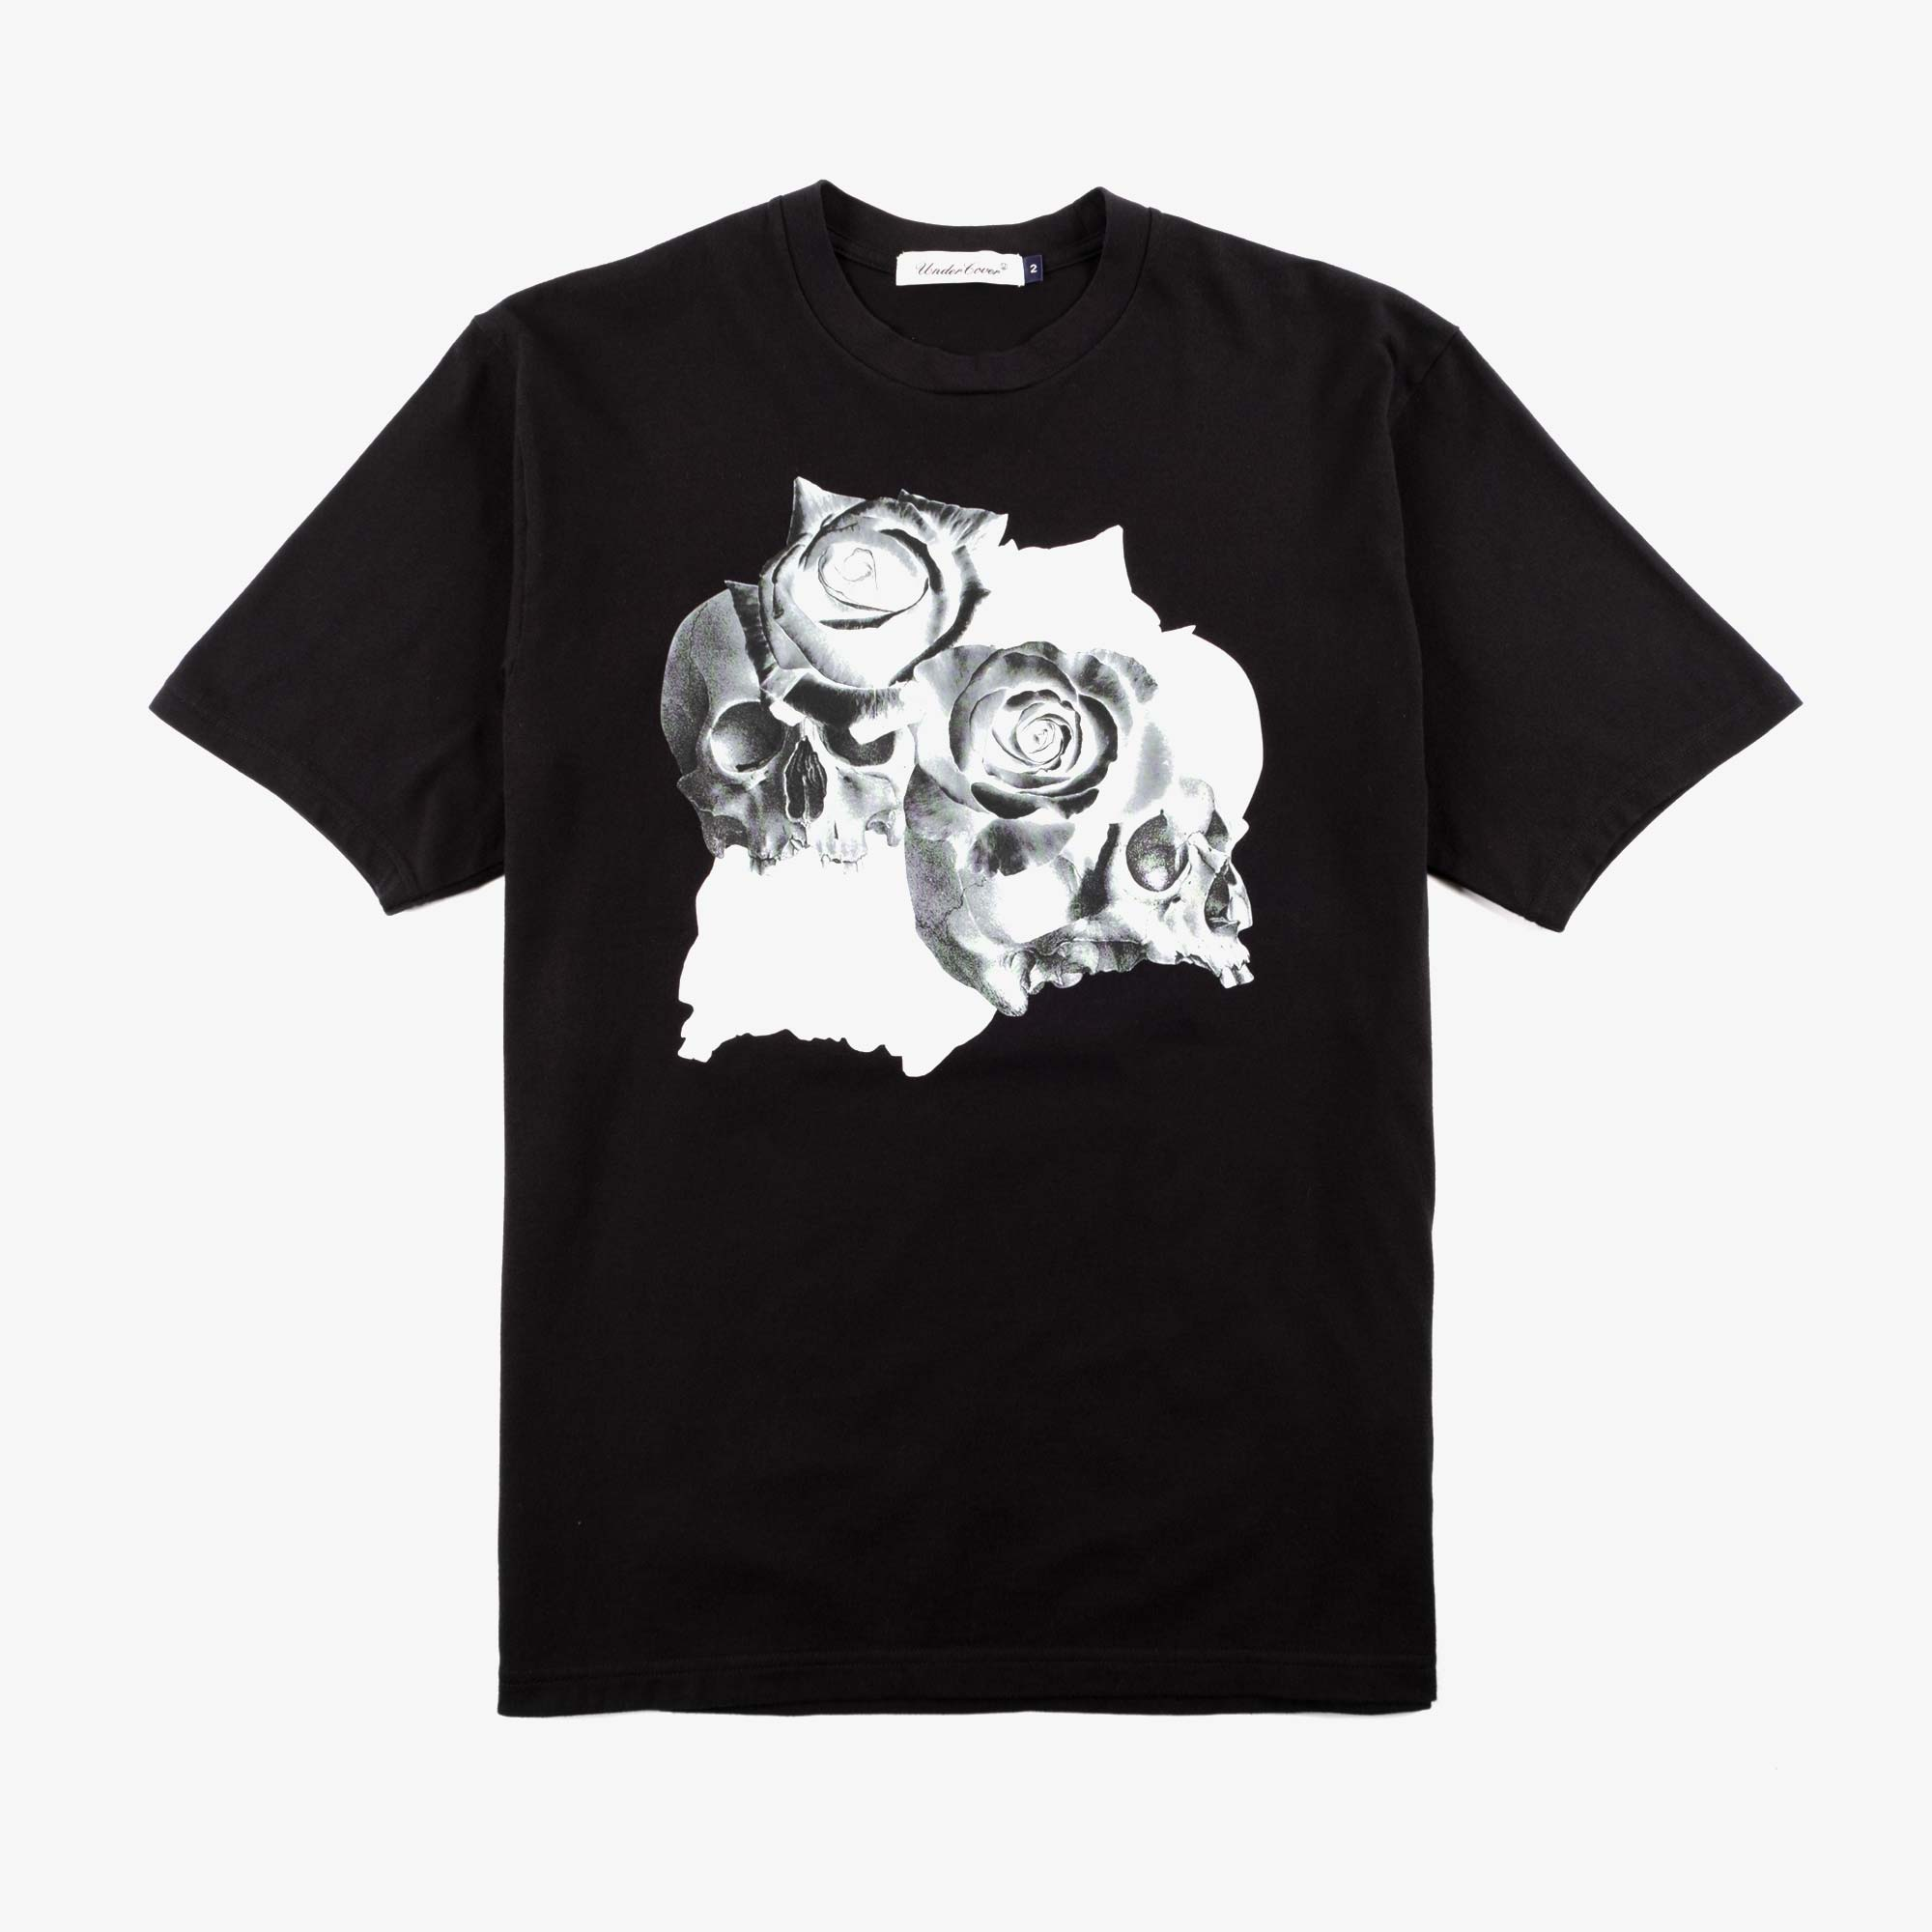 Undercover Roses Skull Tee UC1A3810 - Black 1